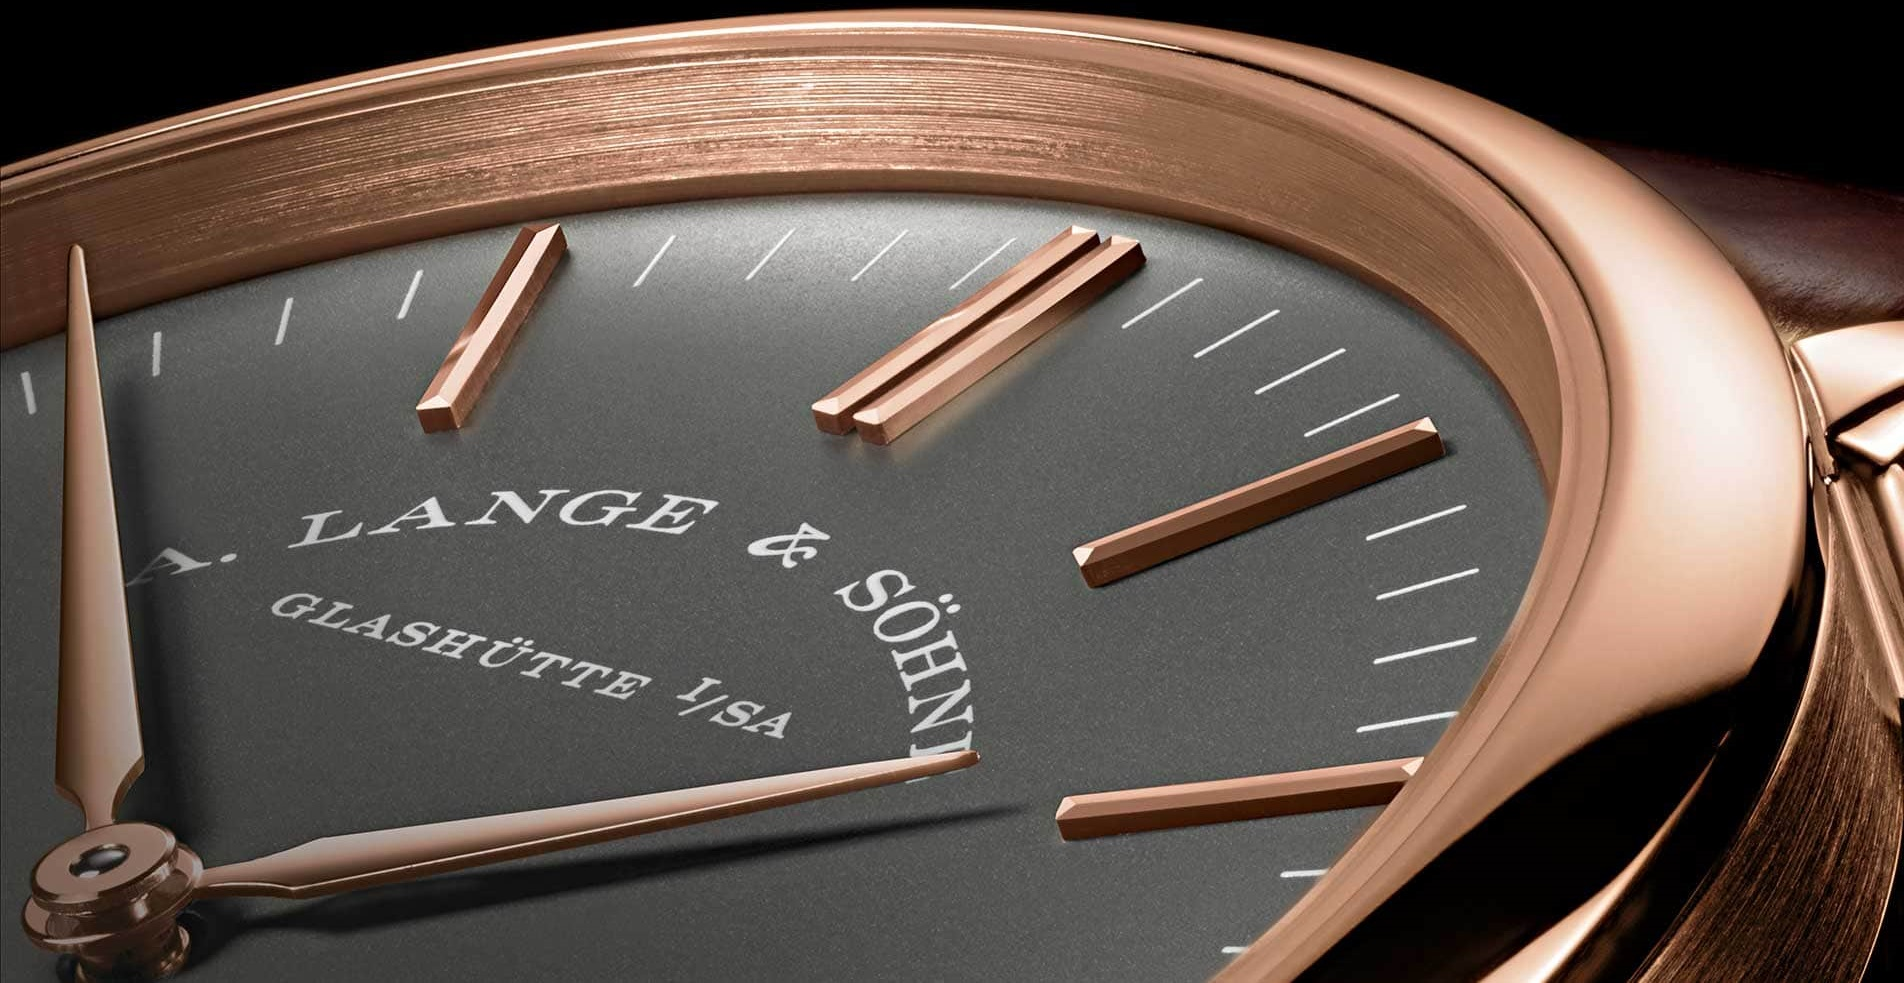 A Lange söhne saxonia pink gold grey dial boutique special edition 216.033 review